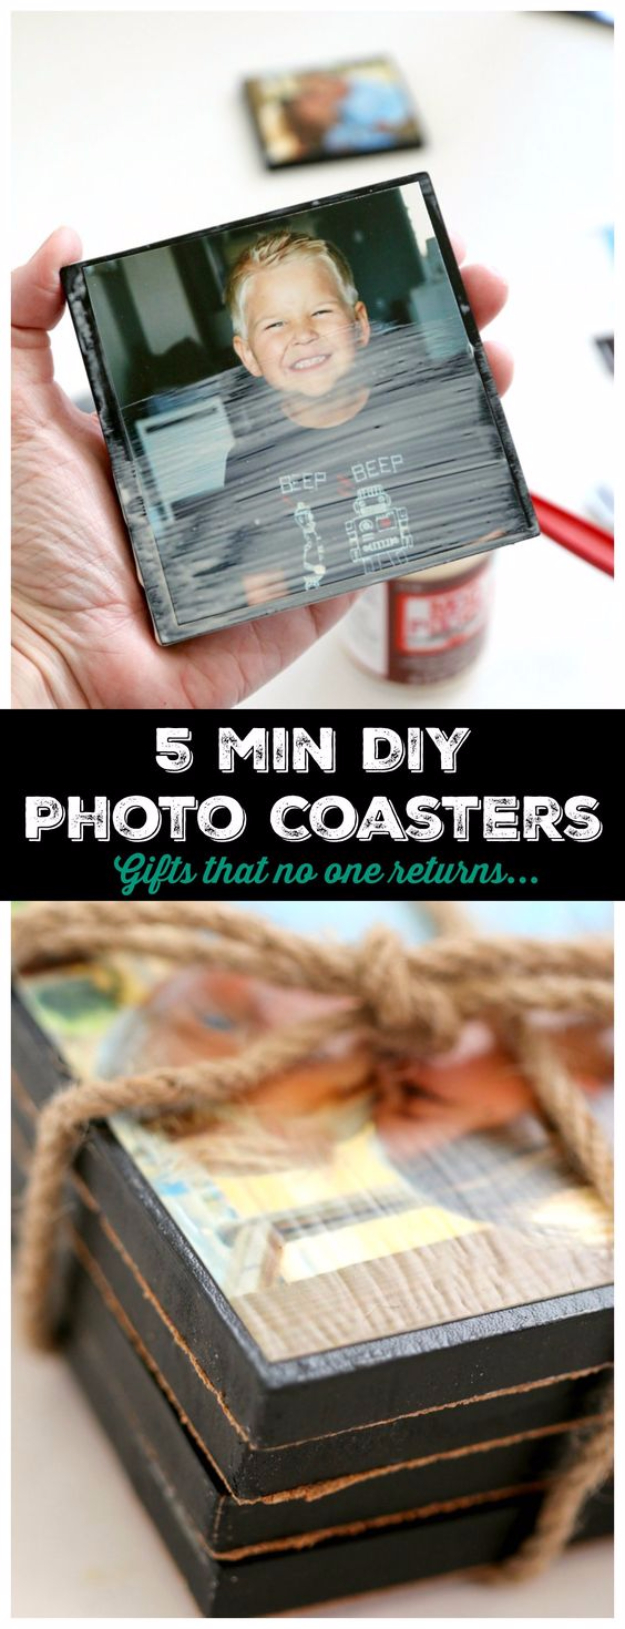 DIY Photo Crafts and Projects for Pictures - 5 Minute DIY Photo Coasters - Handmade Picture Frame Ideas and Step by Step Tutorials for Making Cool DIY Gifts and Home Decor - Cheap and Easy Photo Frames, Creative Ways to Frame and Mount Photos on Canvas and Display Them In Your House